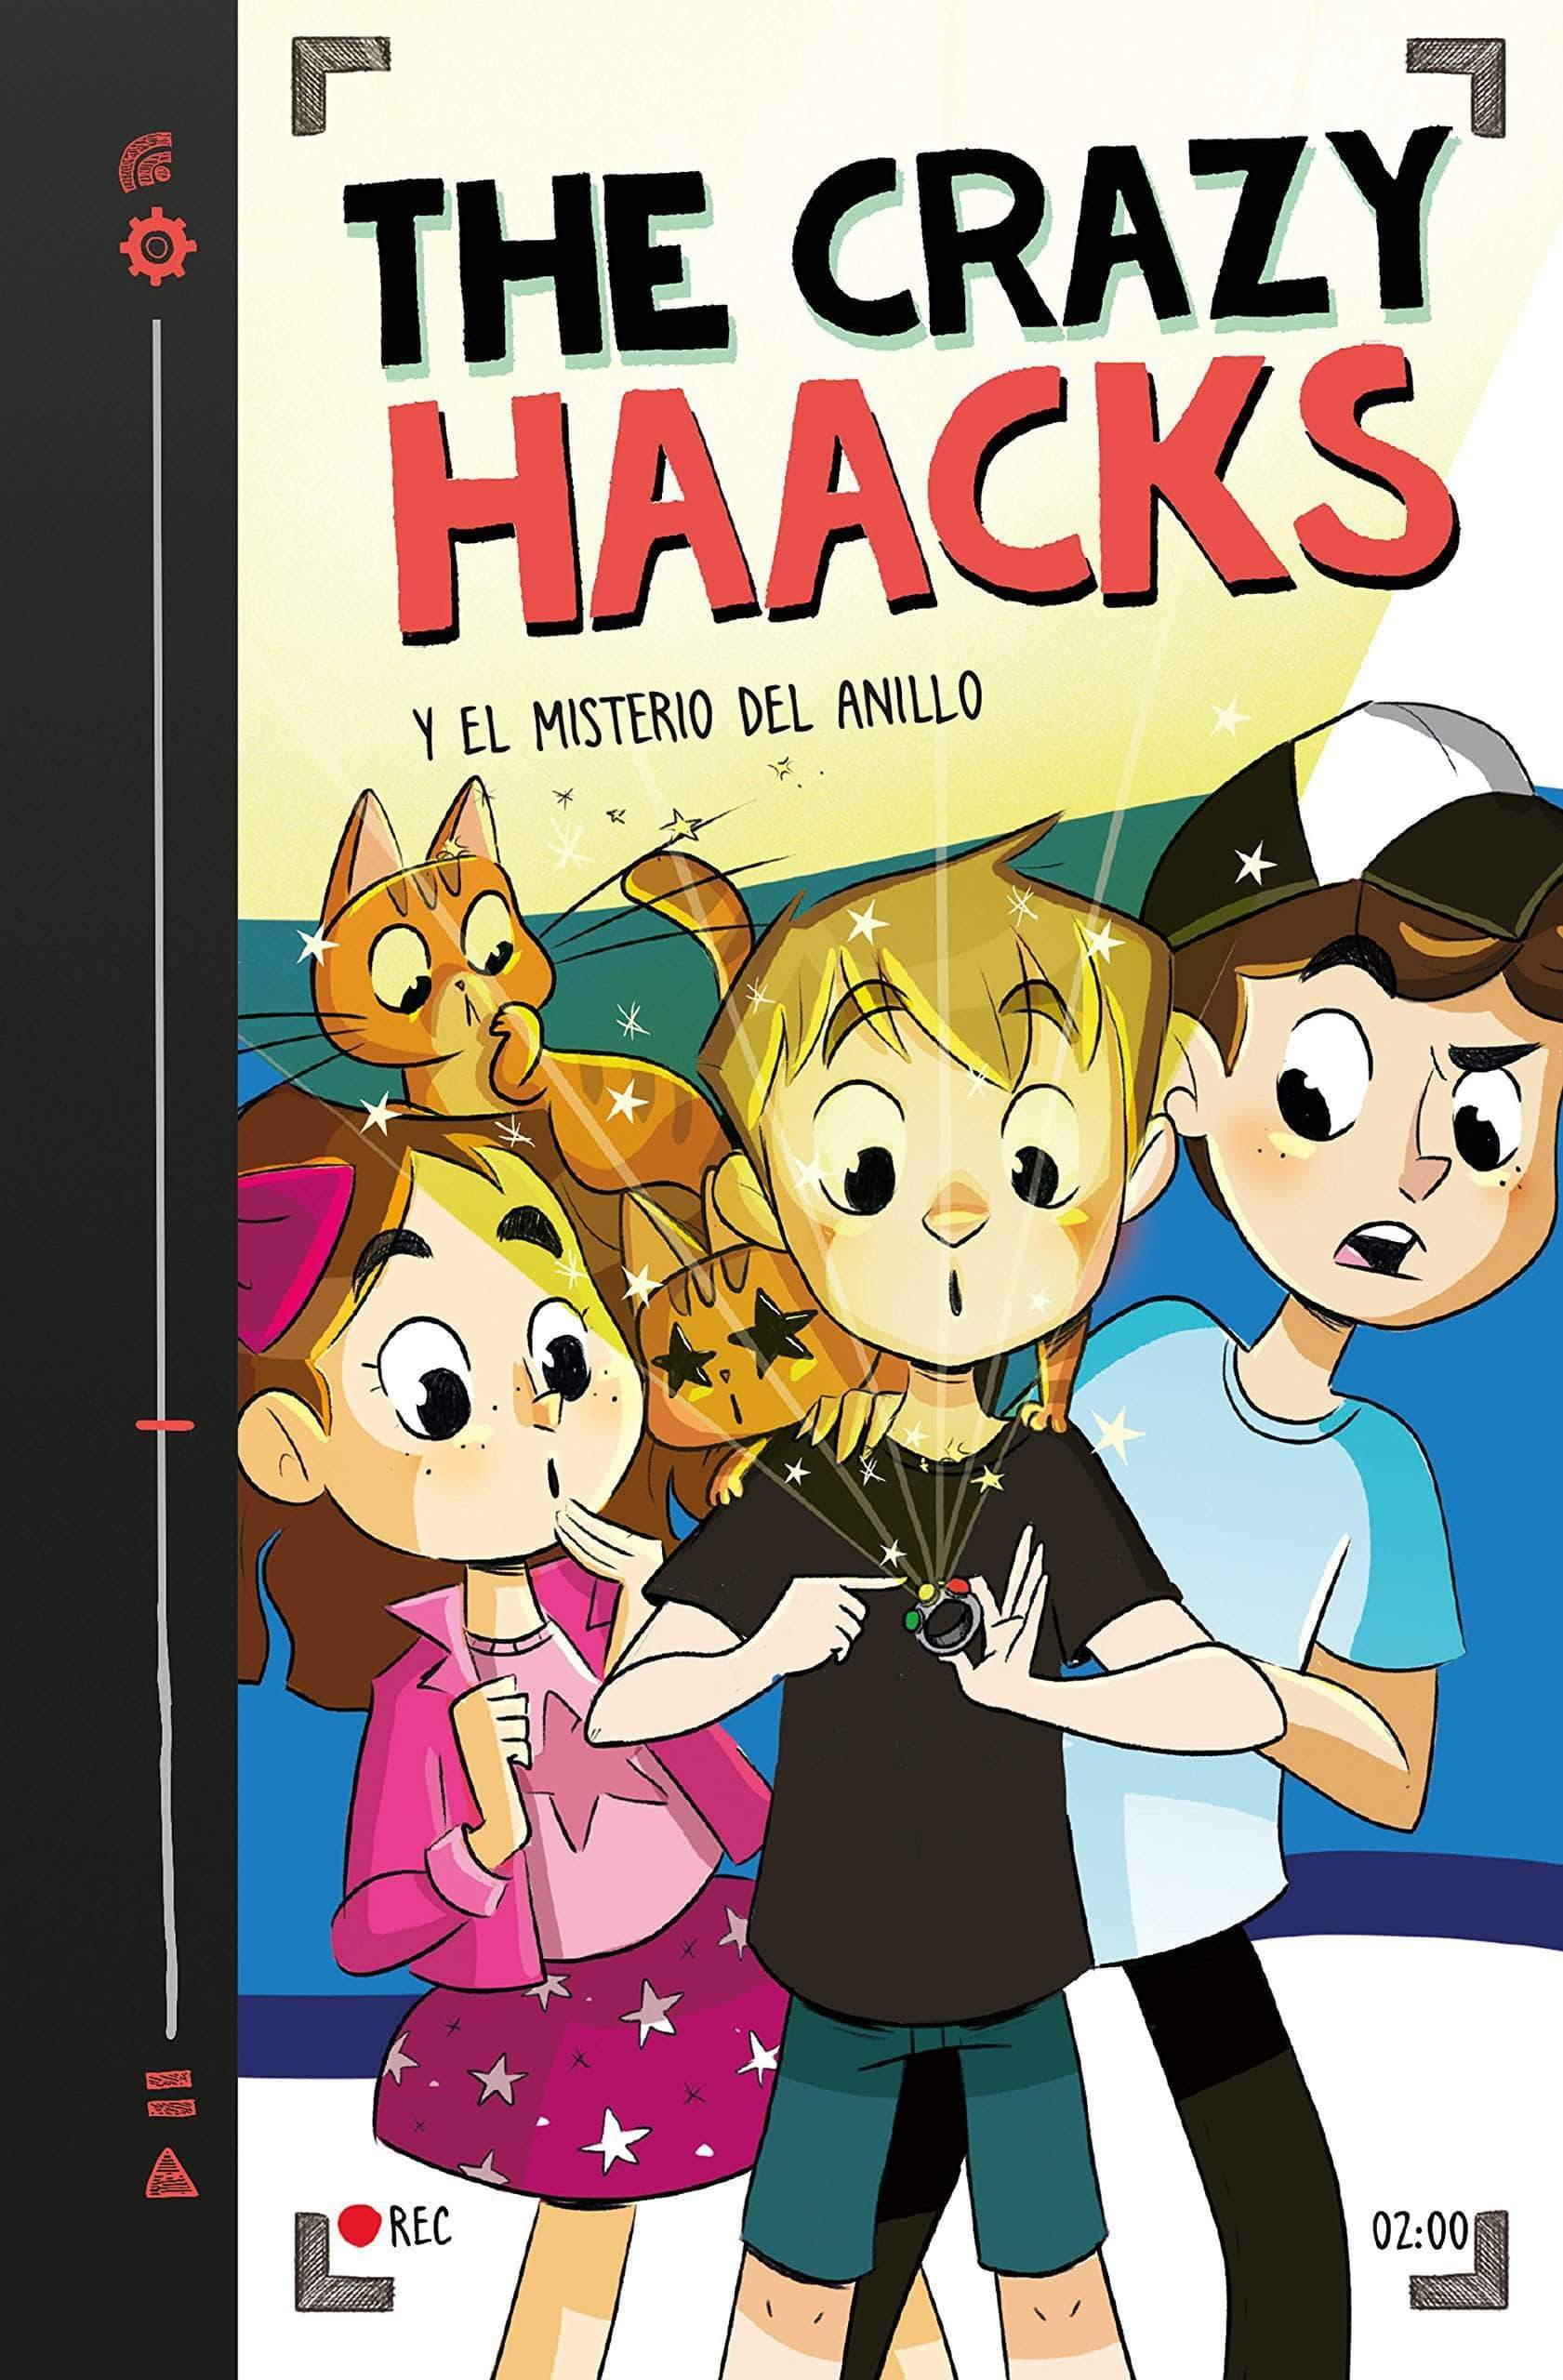 Amazon The Crazy Haacks y el misterio del anillo (The Crazy Haacks 2)